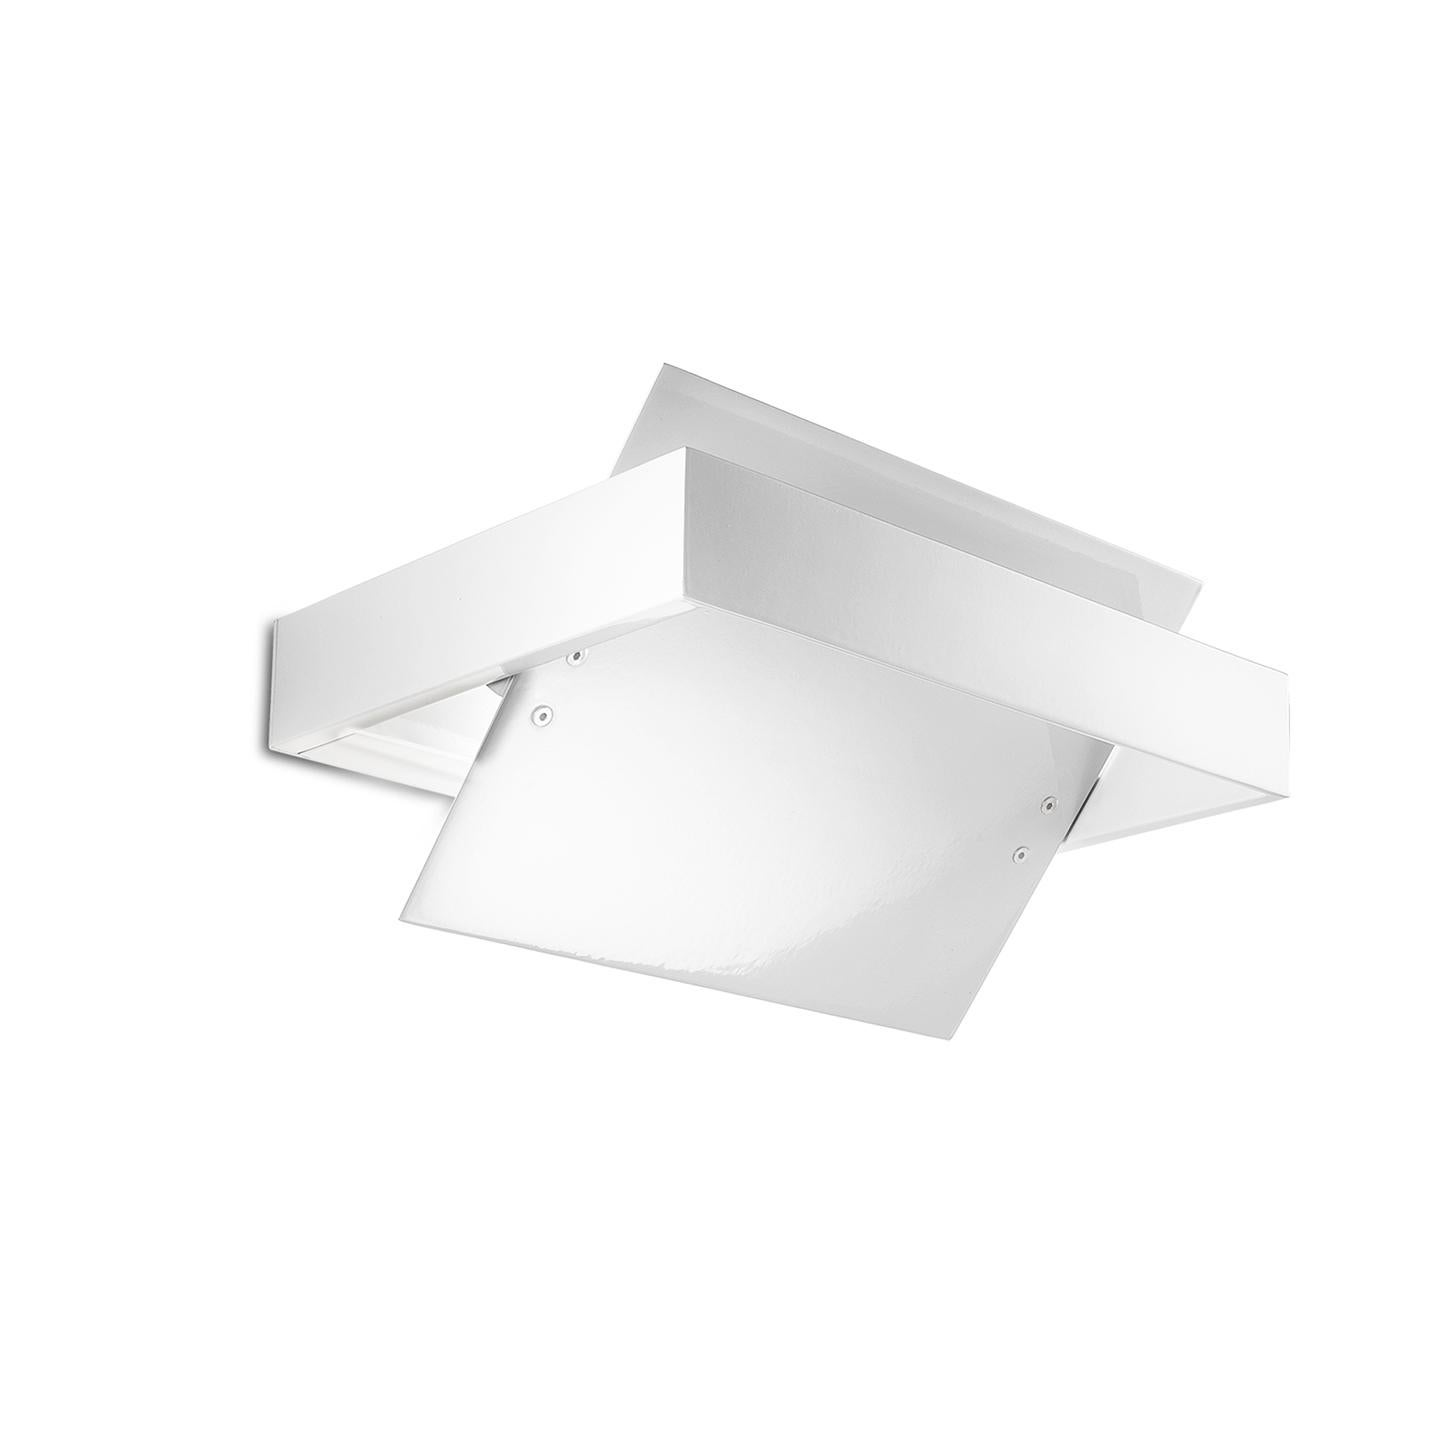 Leucos Ala P 25 Wall Sconce in White by Mauro Marzollo